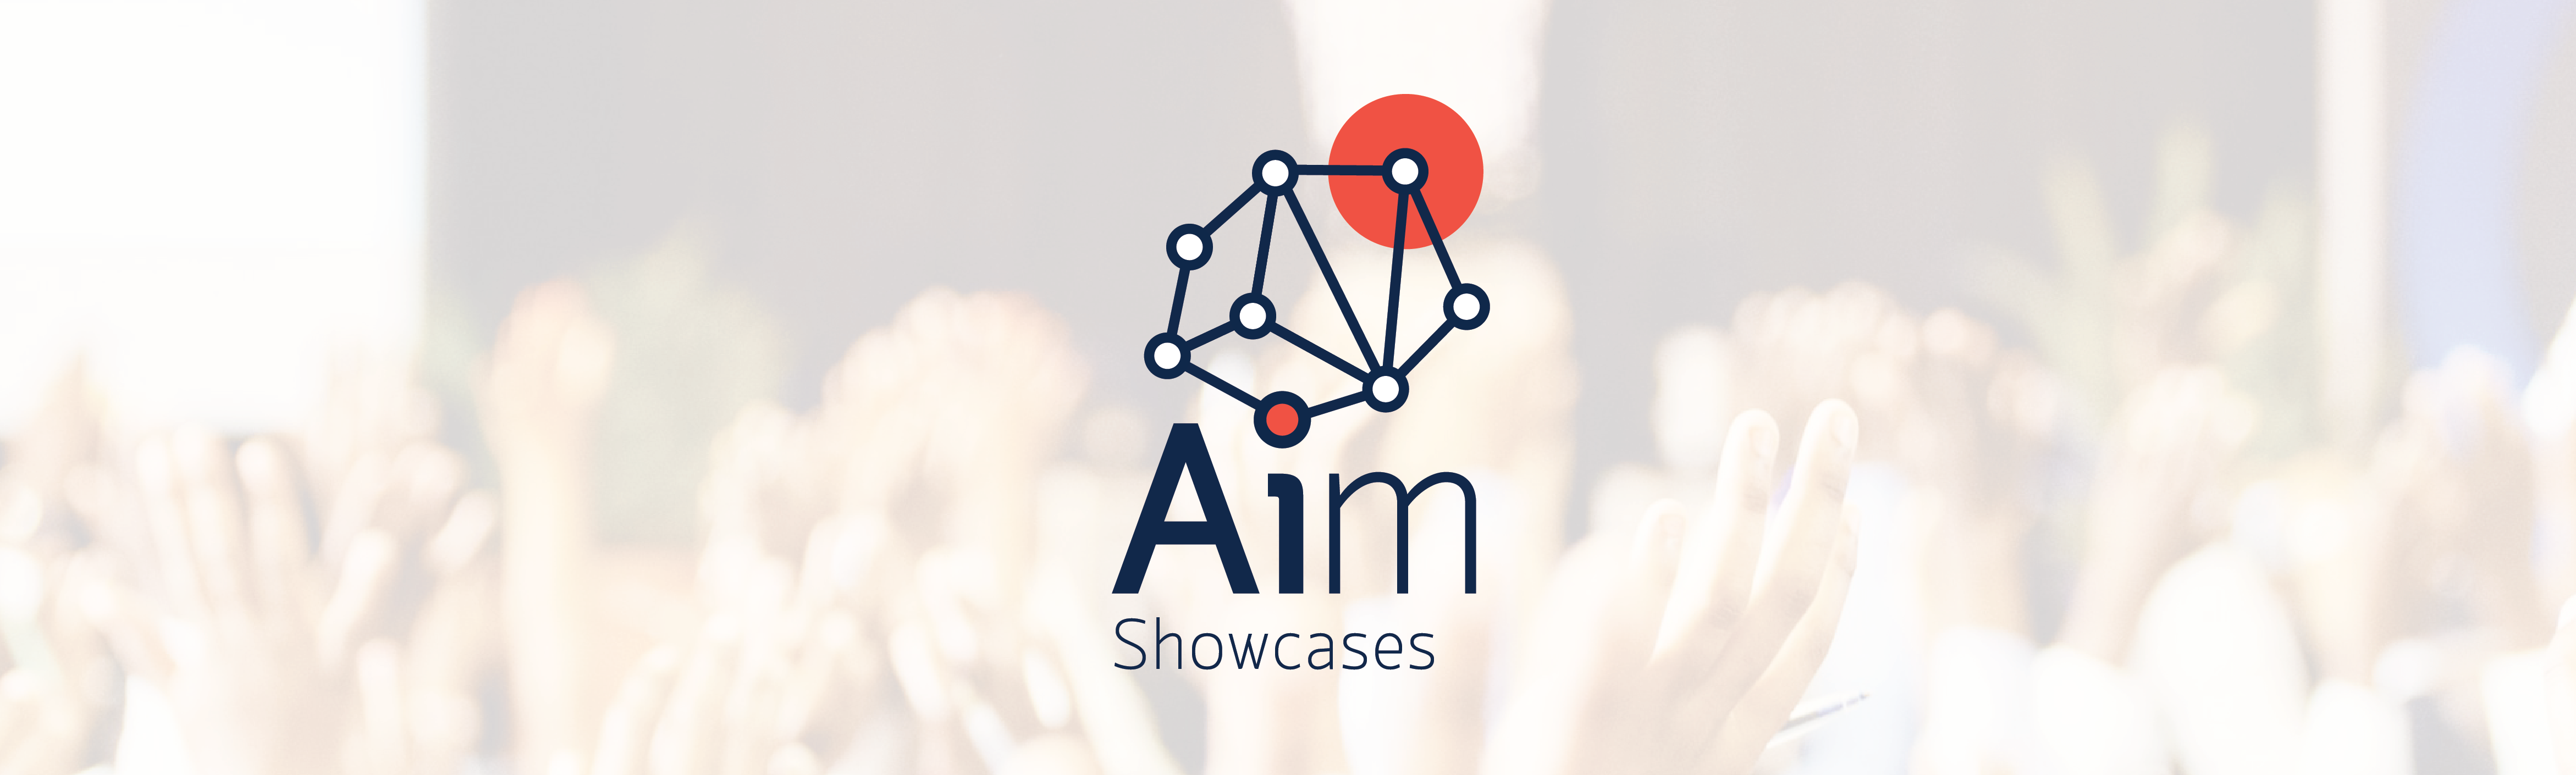 AIM Showcases logo with connecting dots